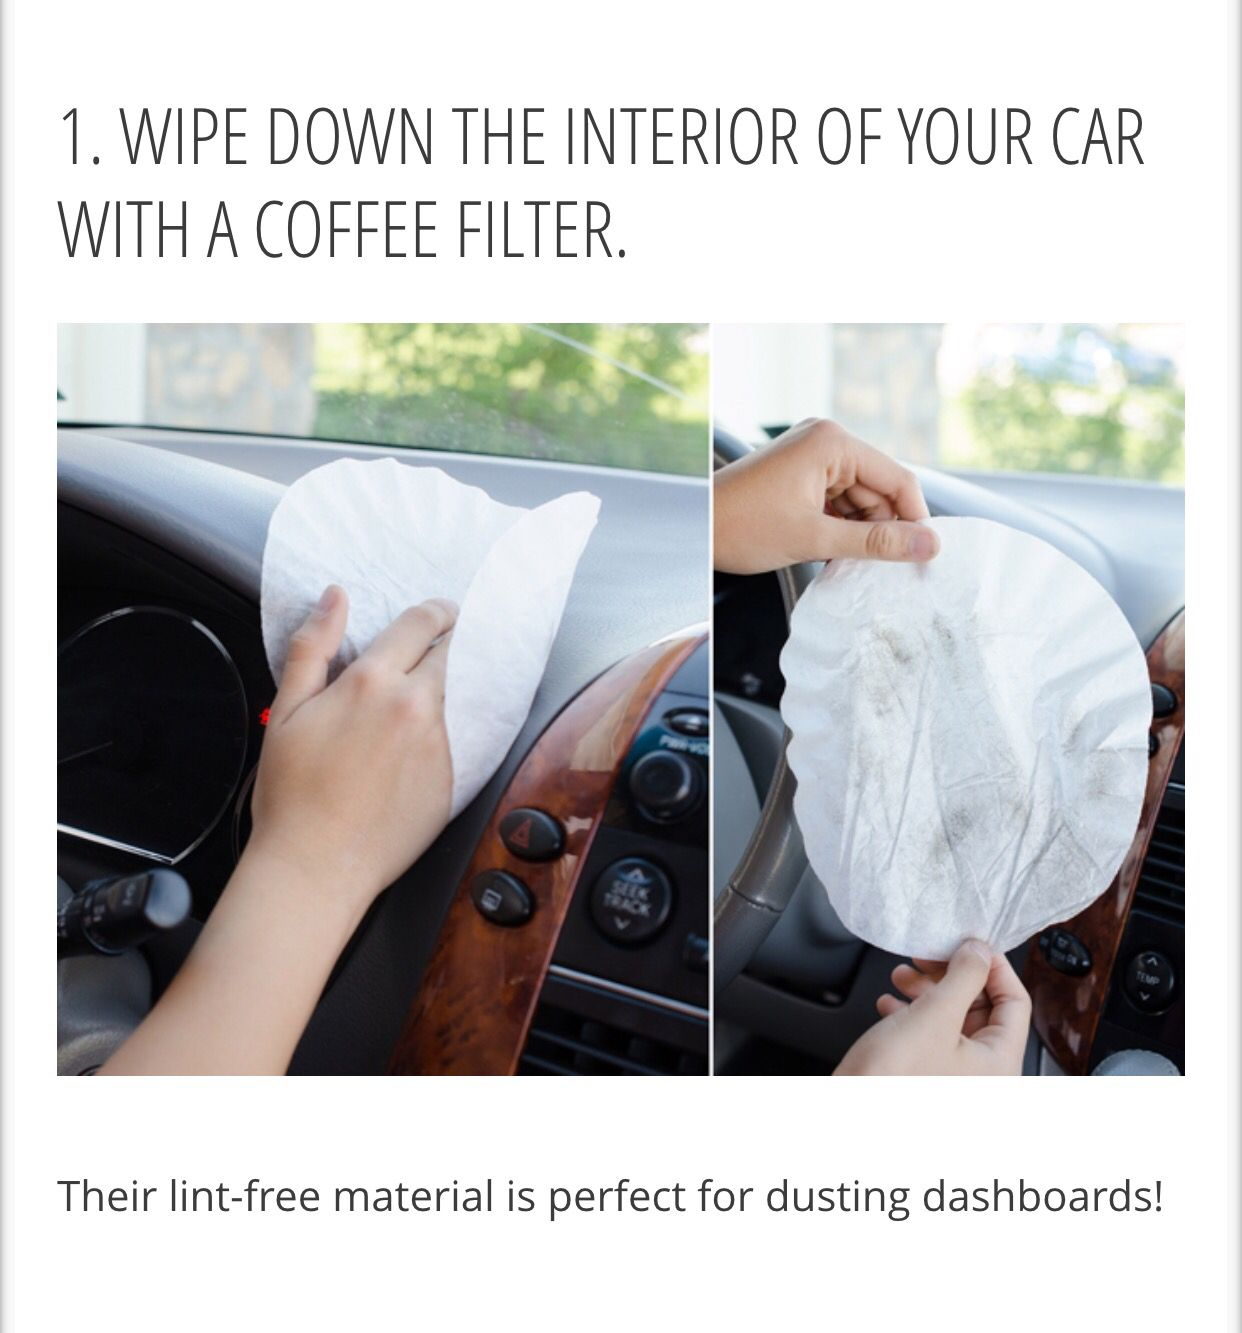 Car interior homemade cleaner - Need To Find The Best Carpet Cleaner Check Out Our Review Of The Bissell Deep Clean Deluxe Cleaner Today